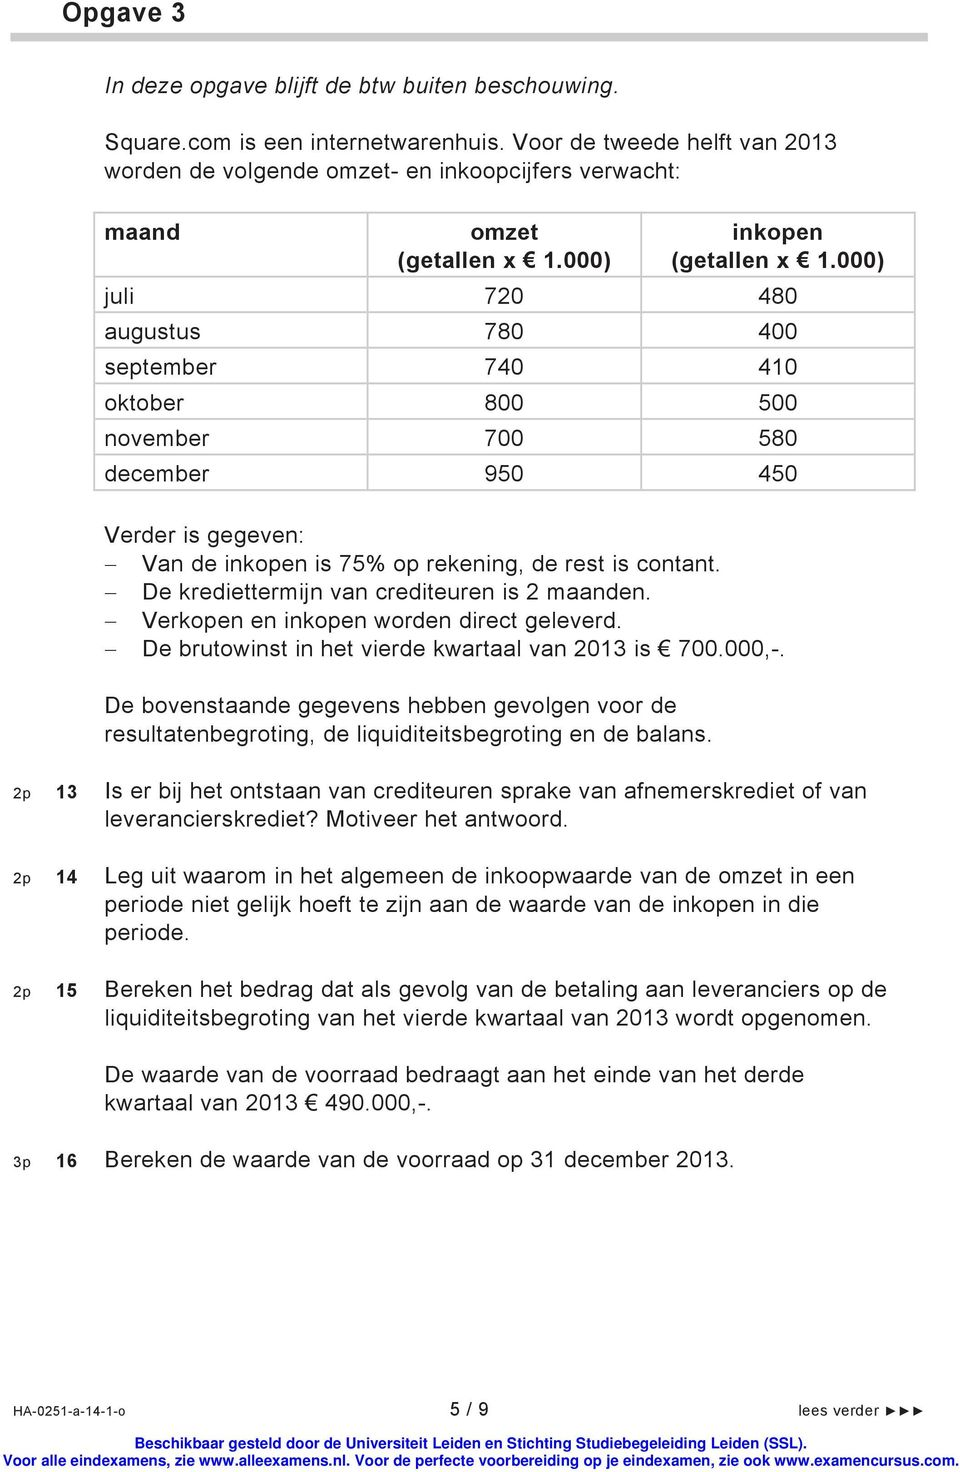 000) juli 720 480 augustus 780 400 september 740 410 oktober 800 500 november 700 580 december 950 450 Verder is gegeven: Van de inkopen is 75% op rekening, de rest is contant.